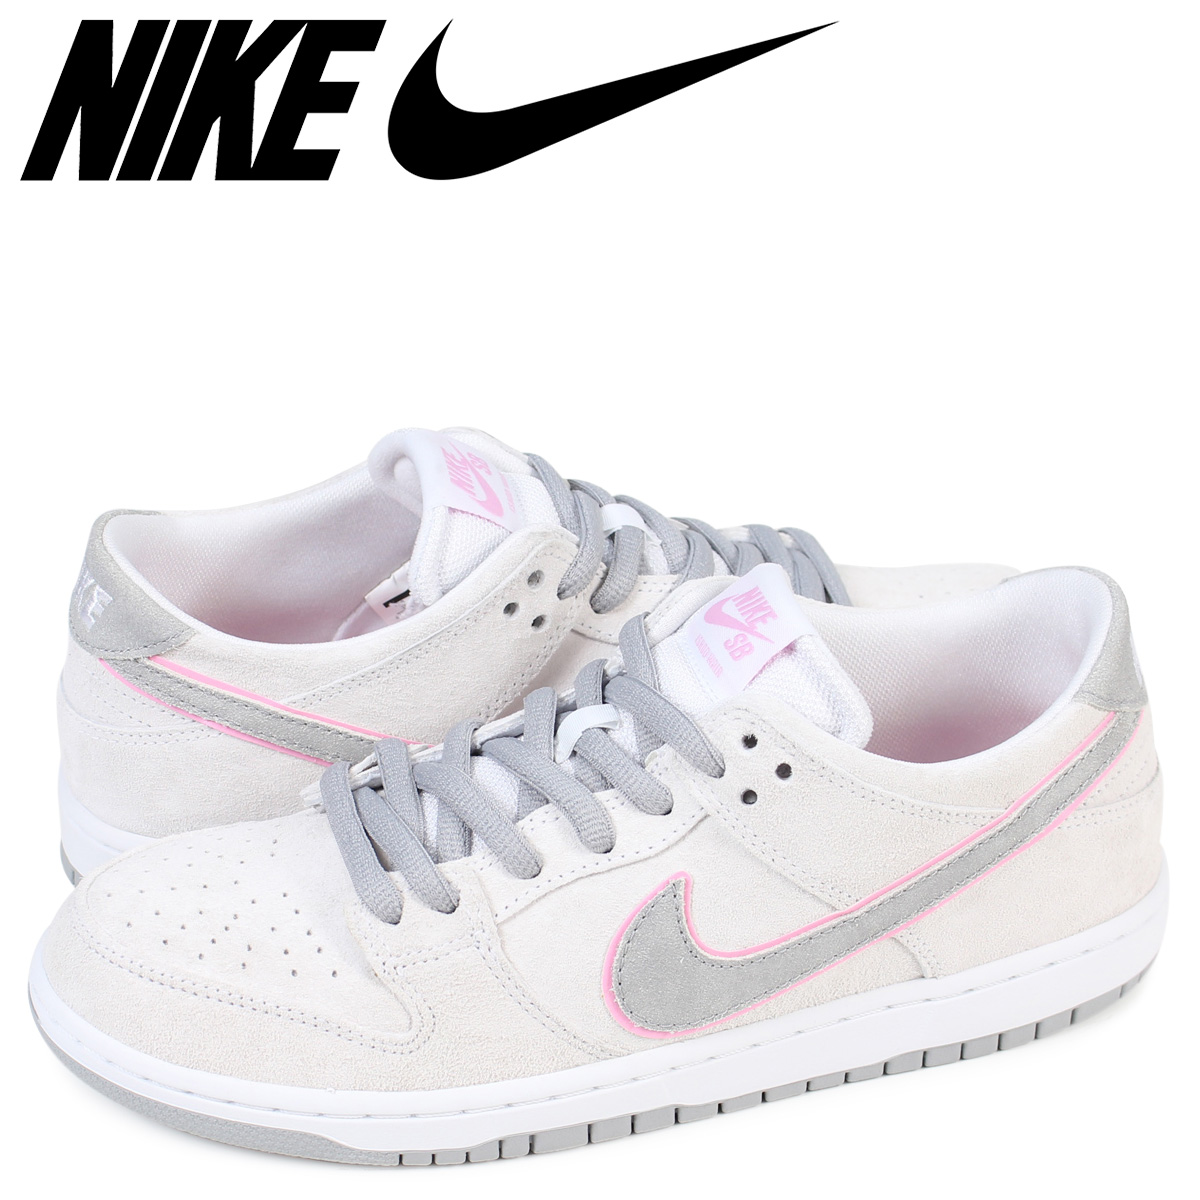 factory price 98835 49426 NIKE SB ZOOM DUNK LOW PRO IW Nike dunk low sneakers 895,969-160 men's pink  [1711]